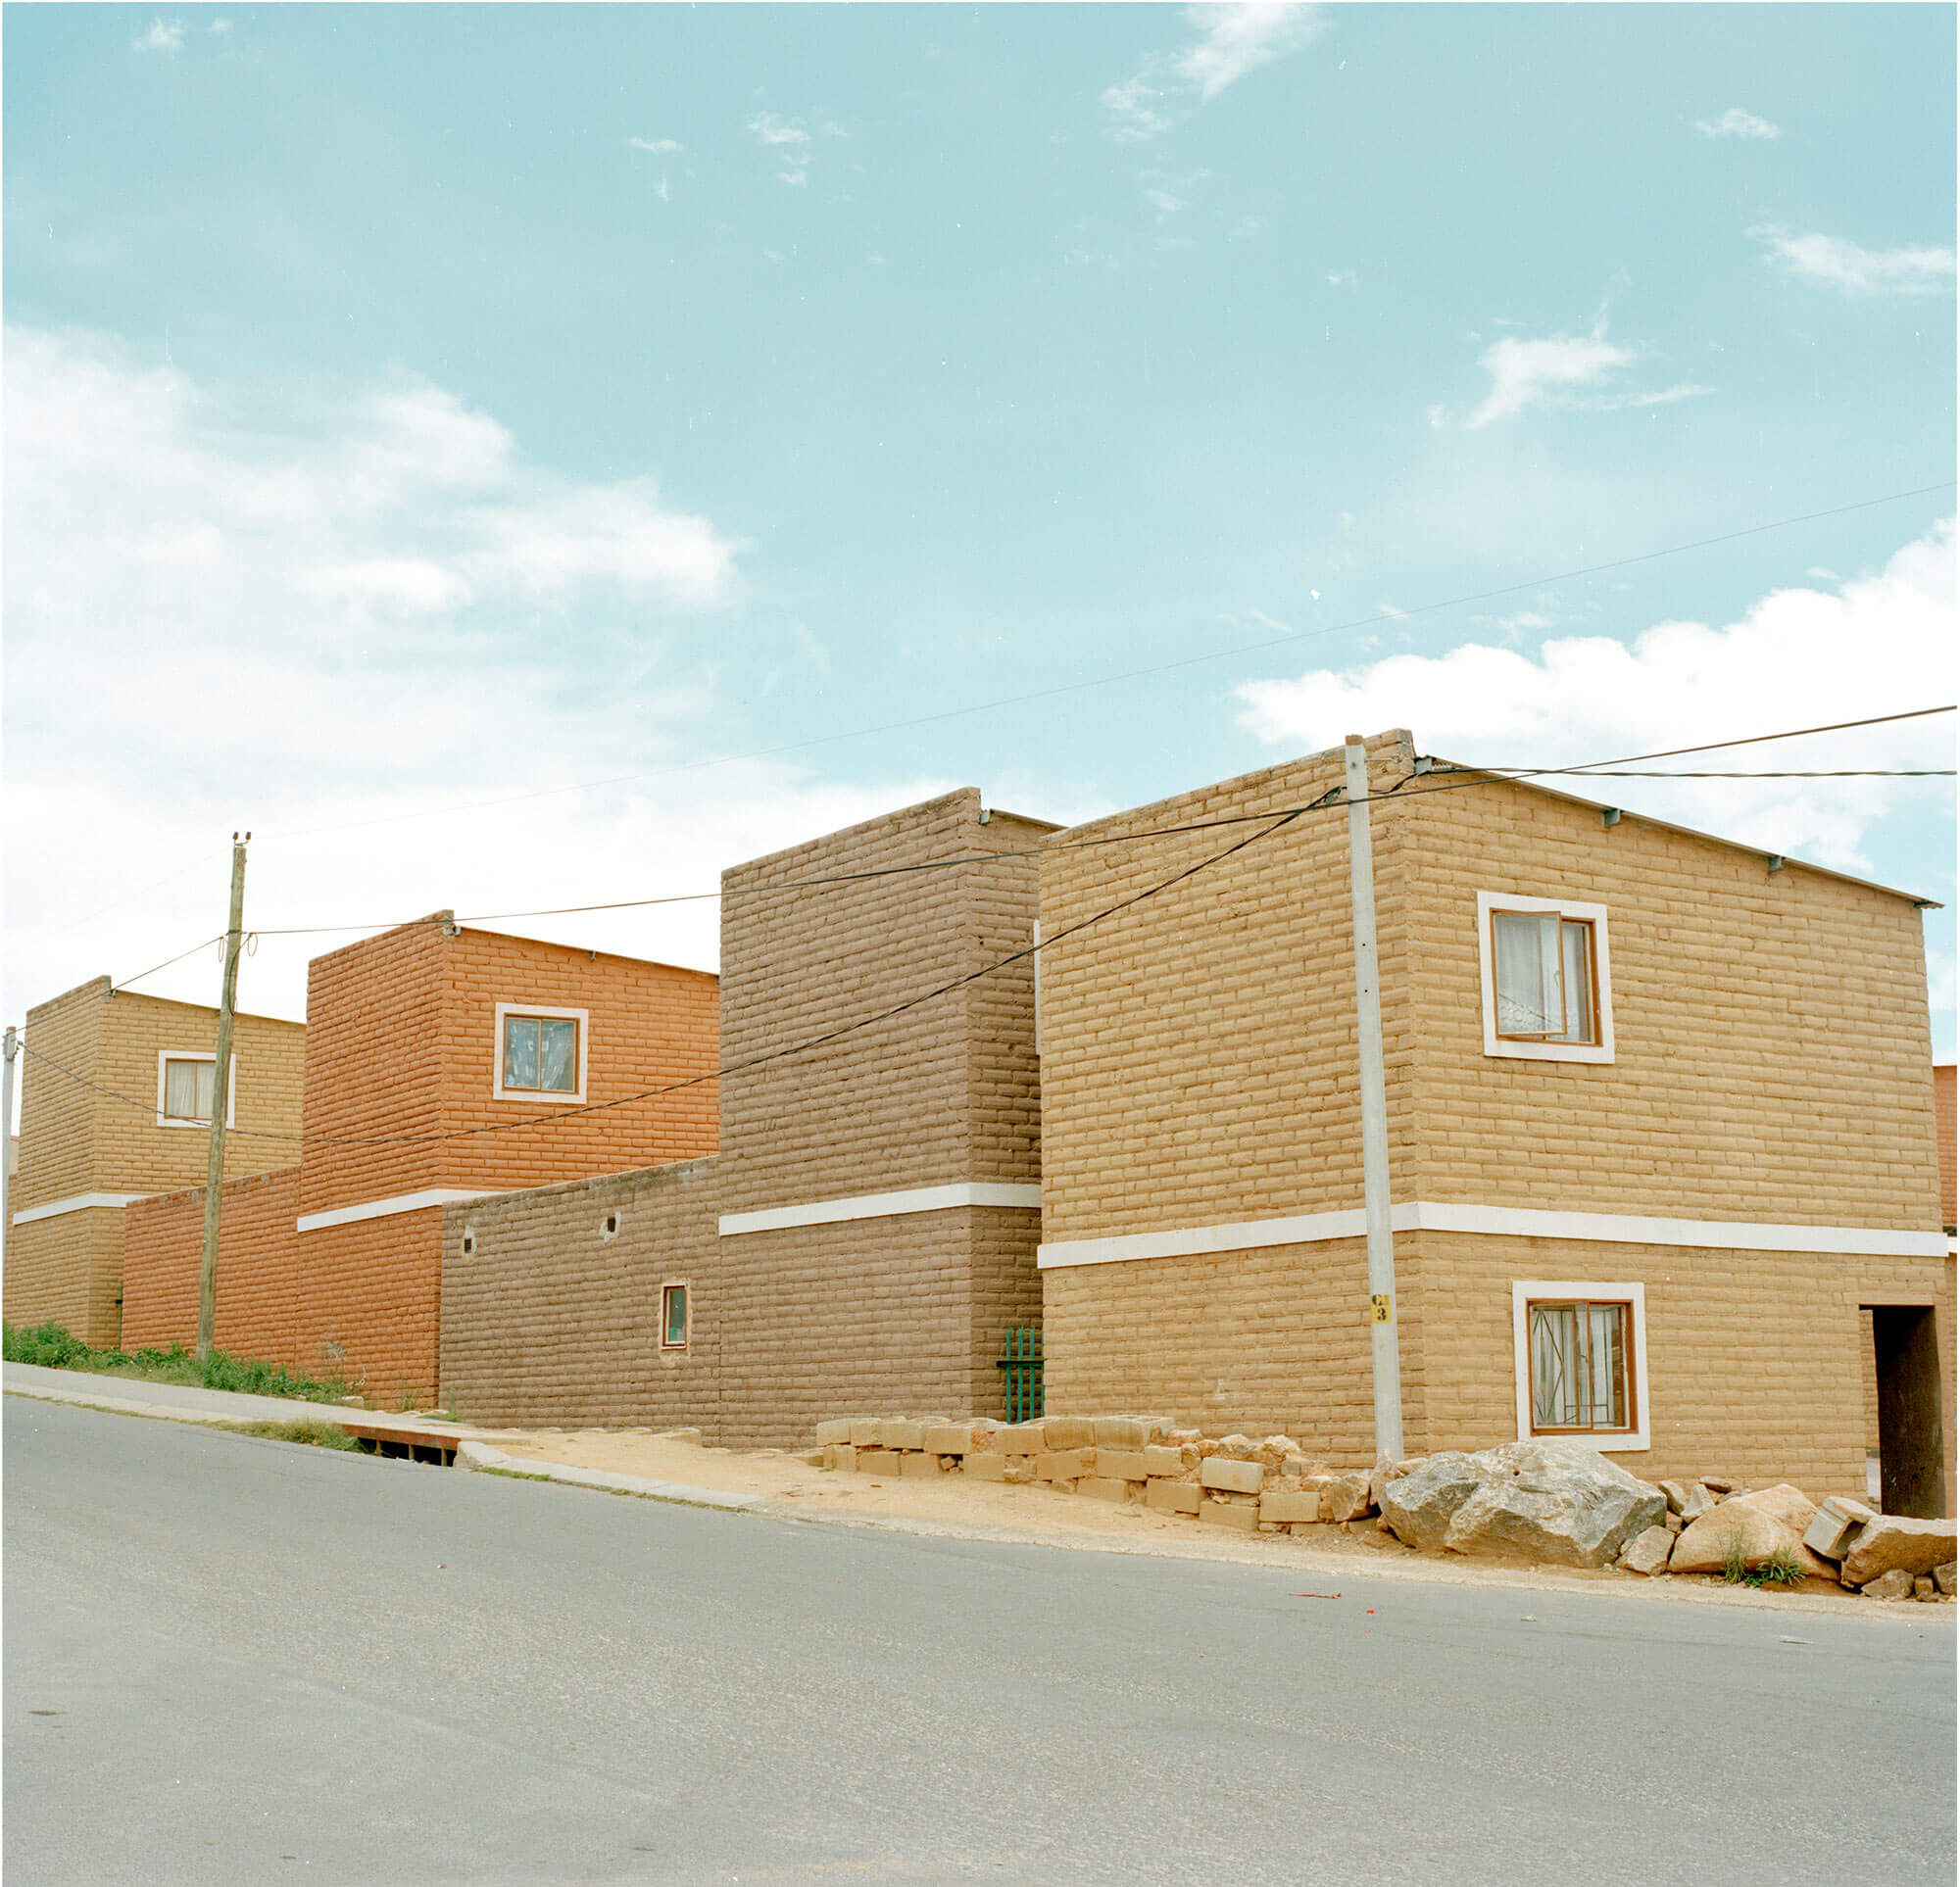 Claudio Rasano SOUTH AFRICA EVERYONE LIVE IN THE SAME PLACE LIKE BEFORE pictures of houses